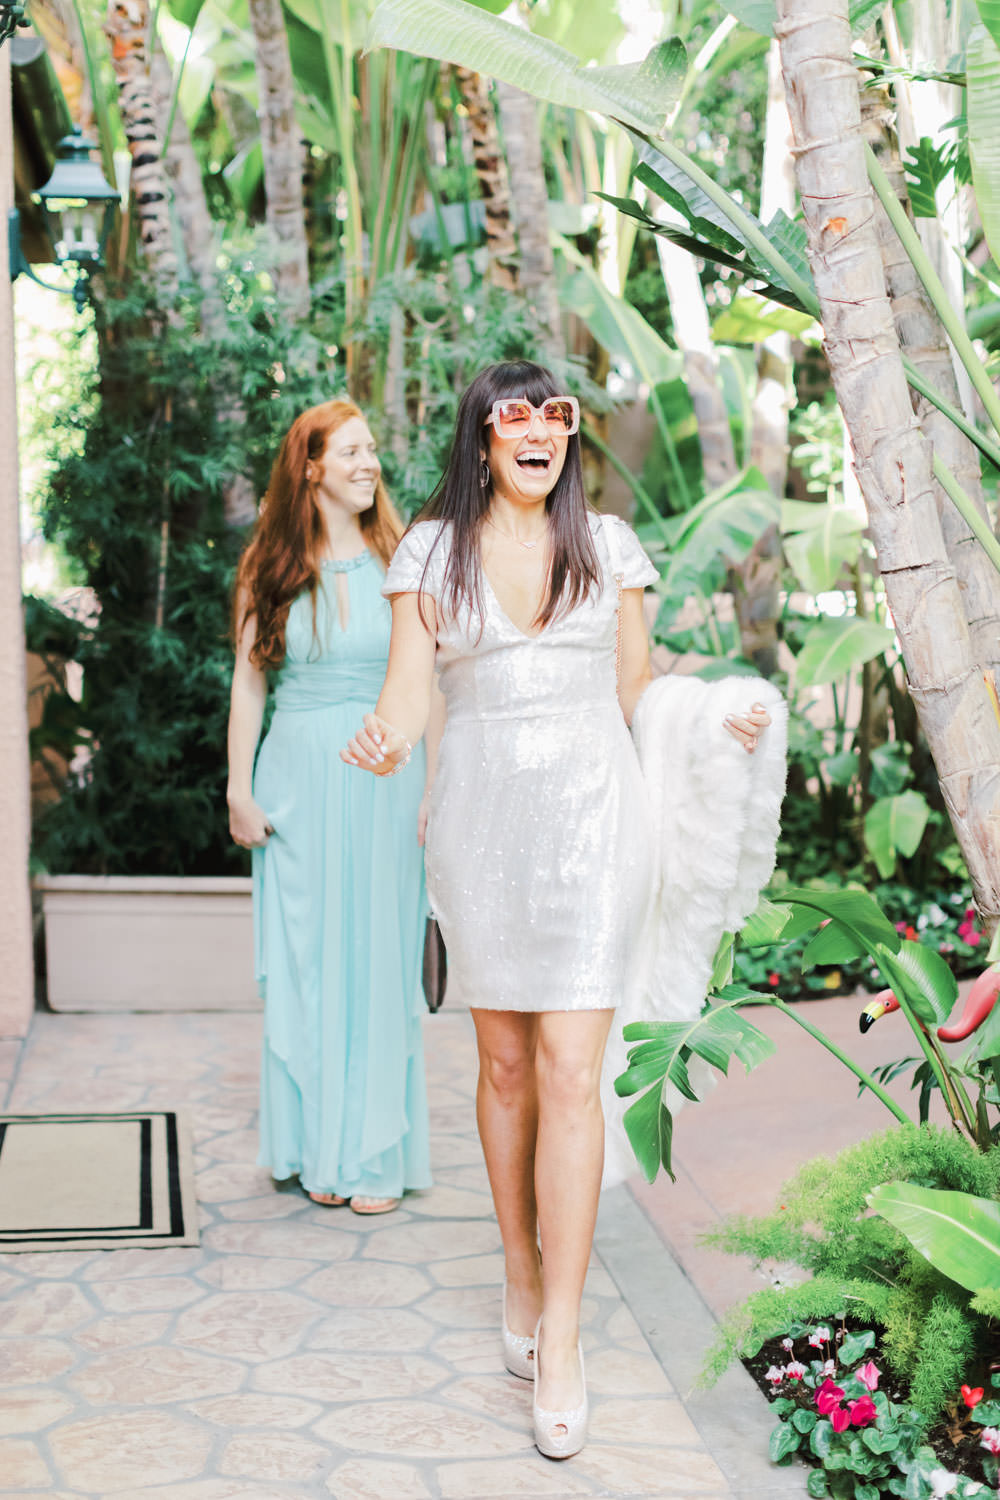 Bride wearing white sparkly sequin dress and white fur shawl with white handbag at Chic Beverly Hills Hotel Bridal Shower during Christmas decorations, Cavin Elizabeth Photography